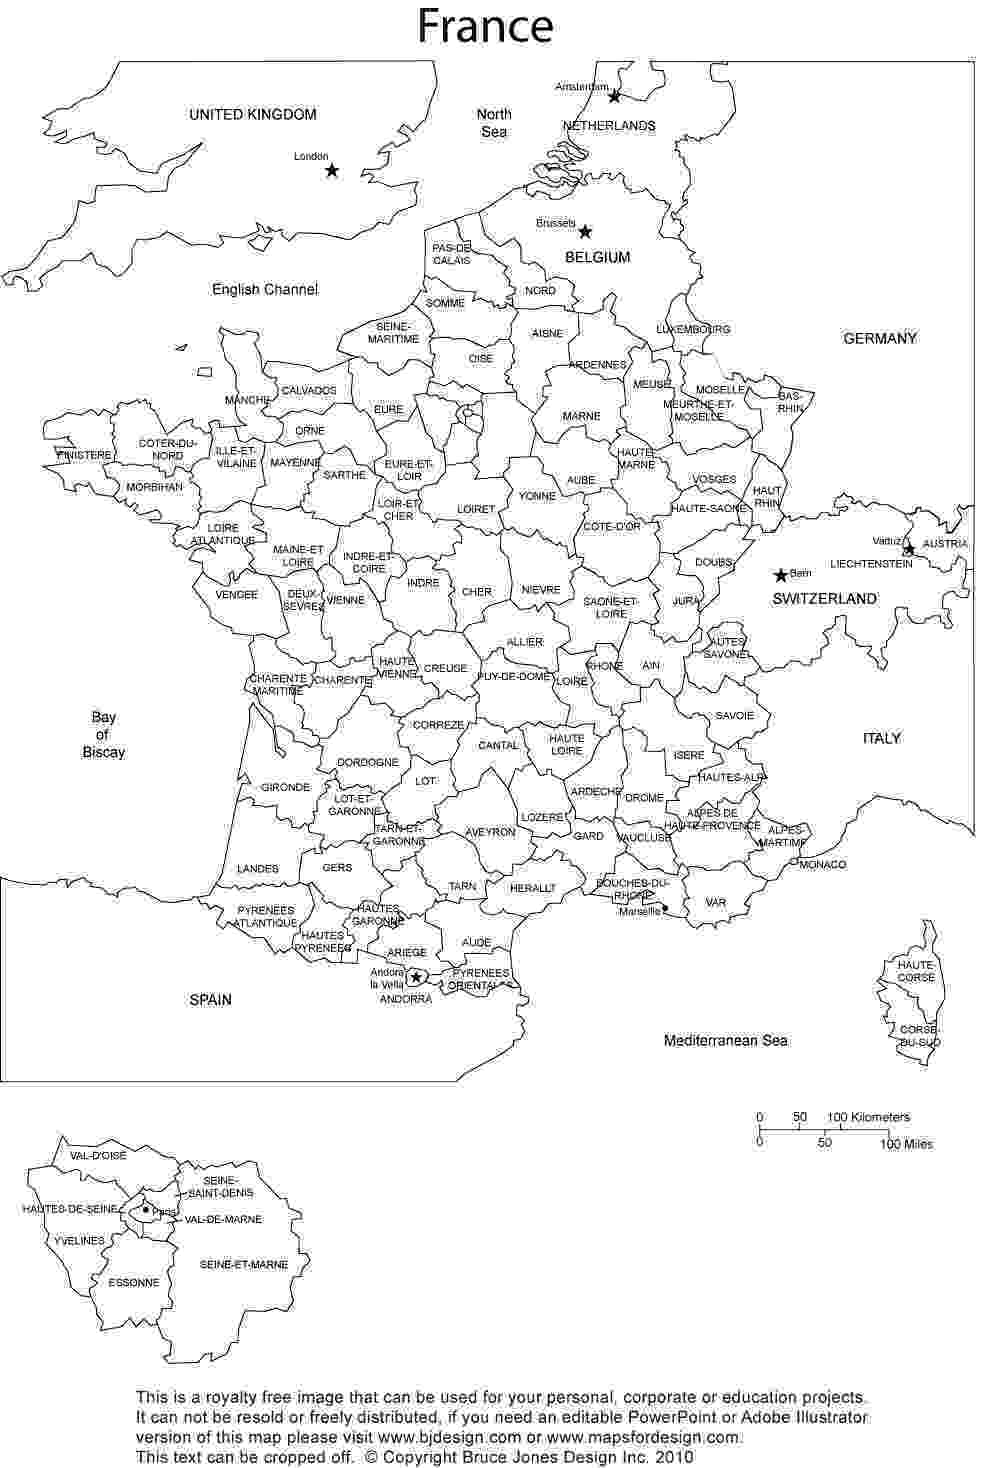 free printable pictures of france france map printable blank royalty free jpg of france free pictures printable